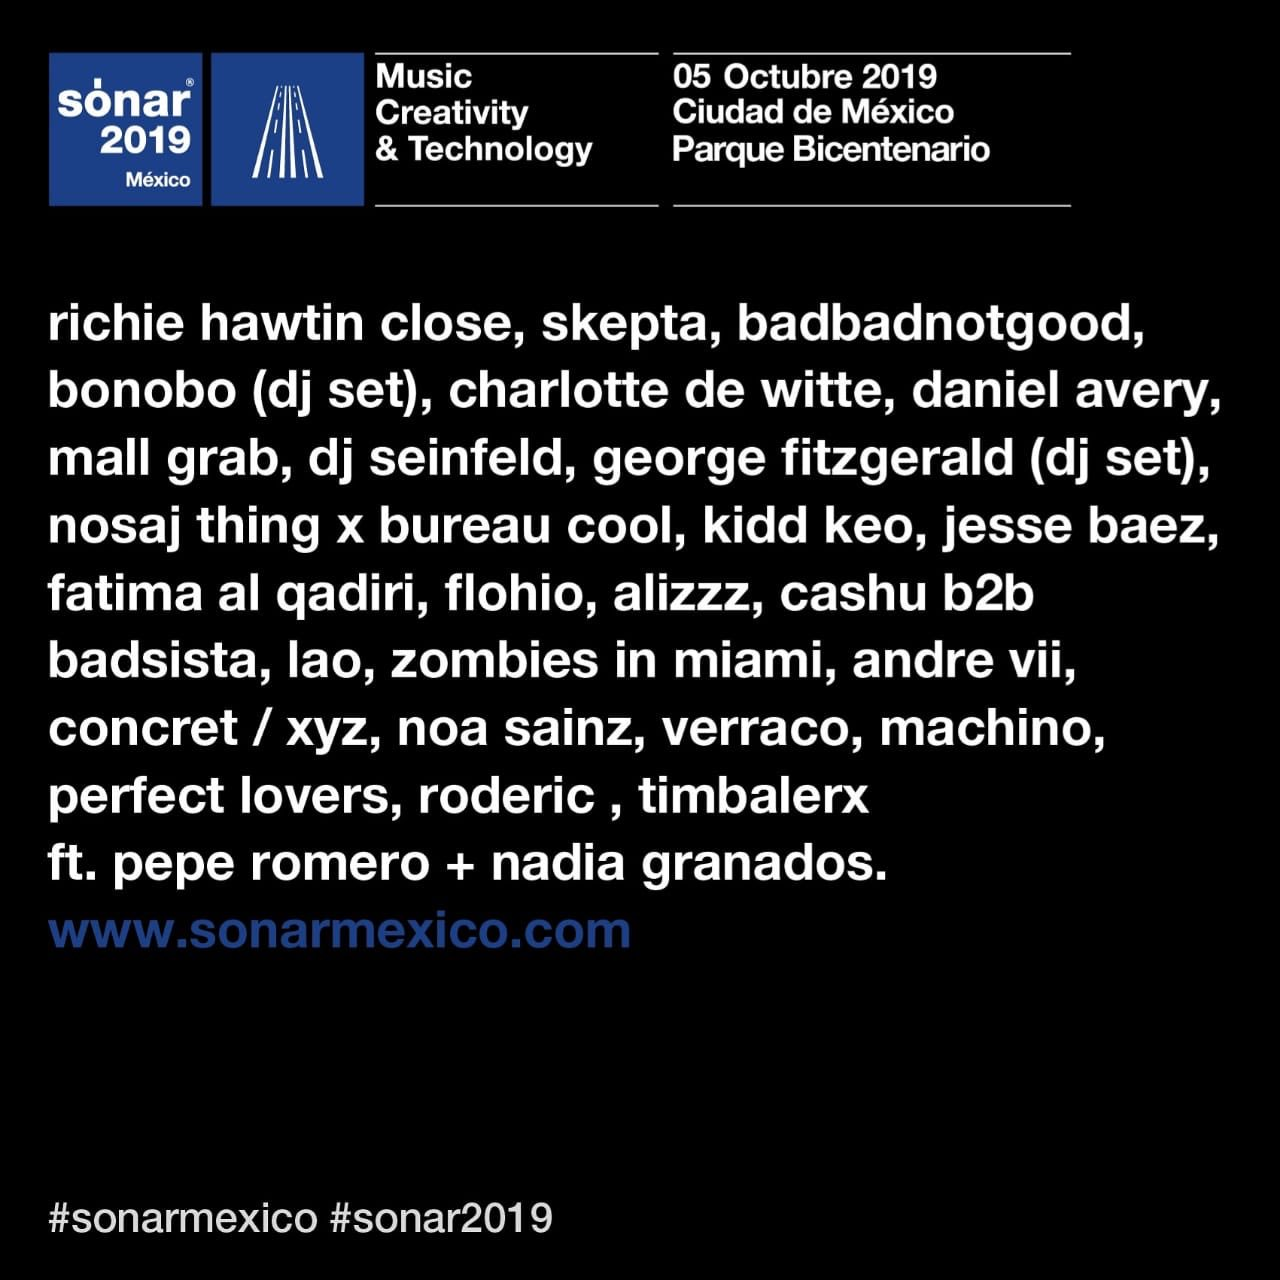 The Sónar México lineup for 2019